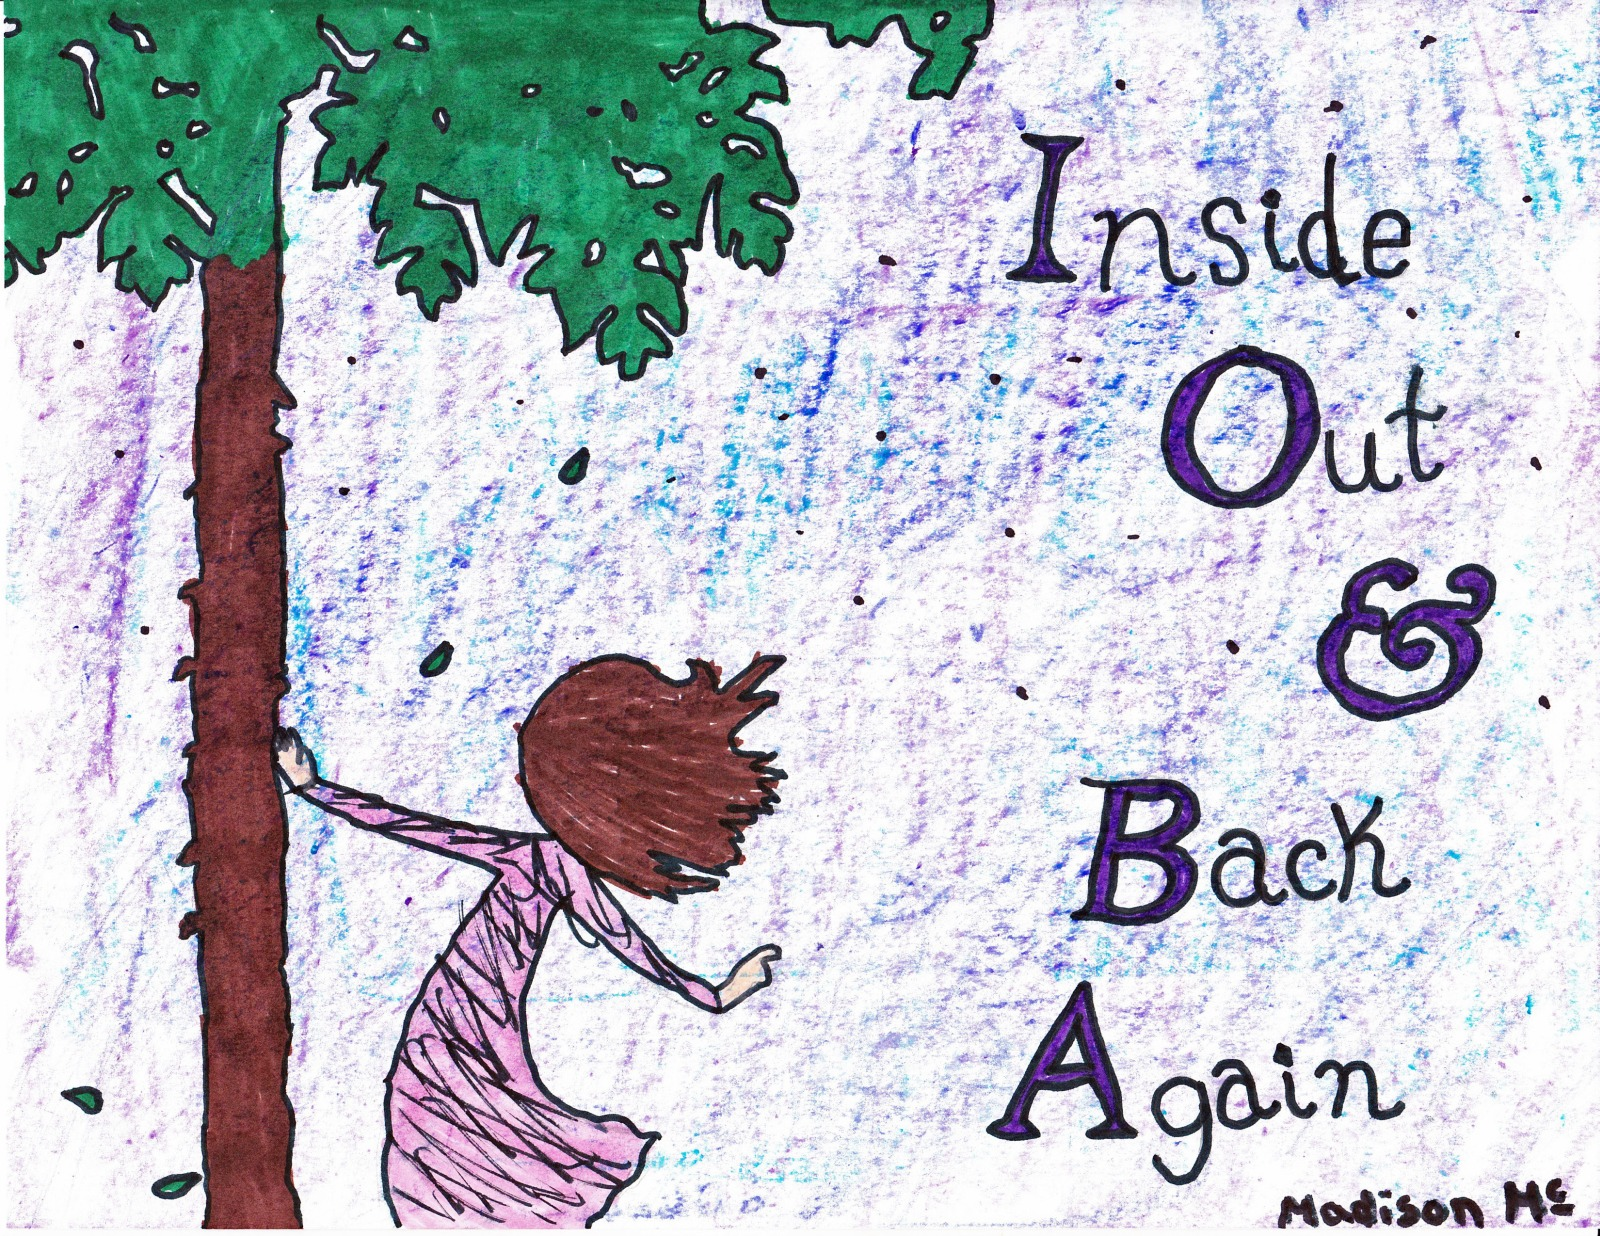 Inside Out And Back Again, artwork by Madison McConnell